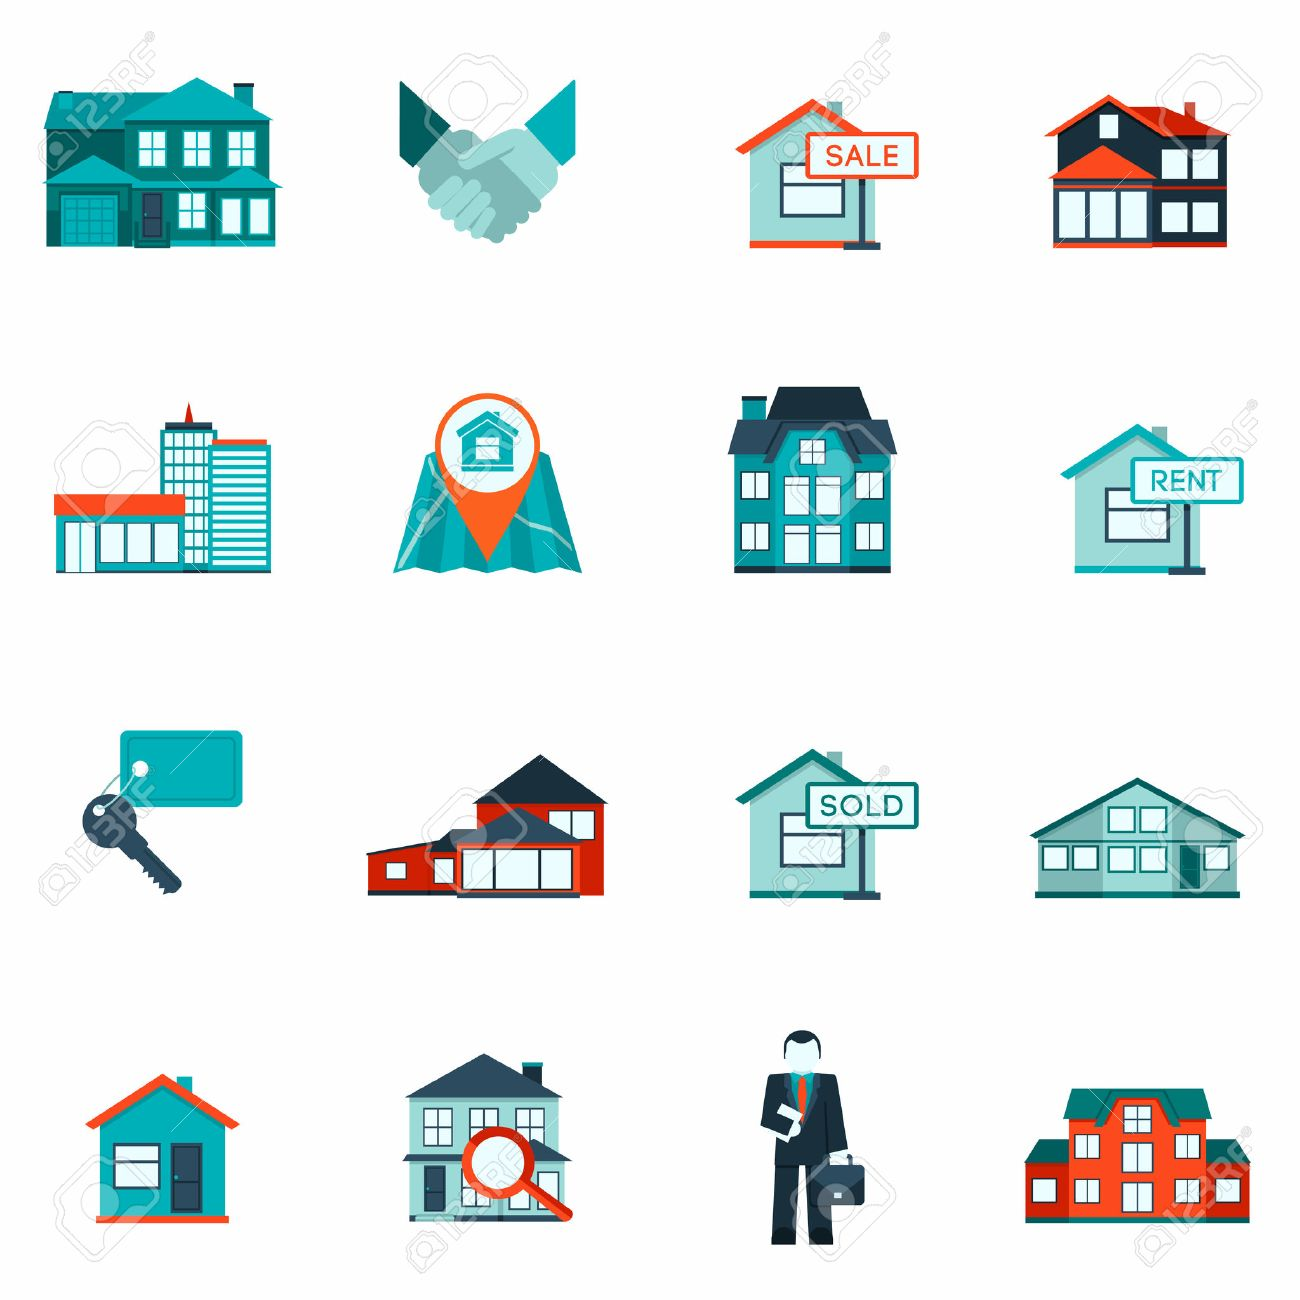 Real estate house and apartment rent and sale icon flat set isolated vector illustration - 35957812